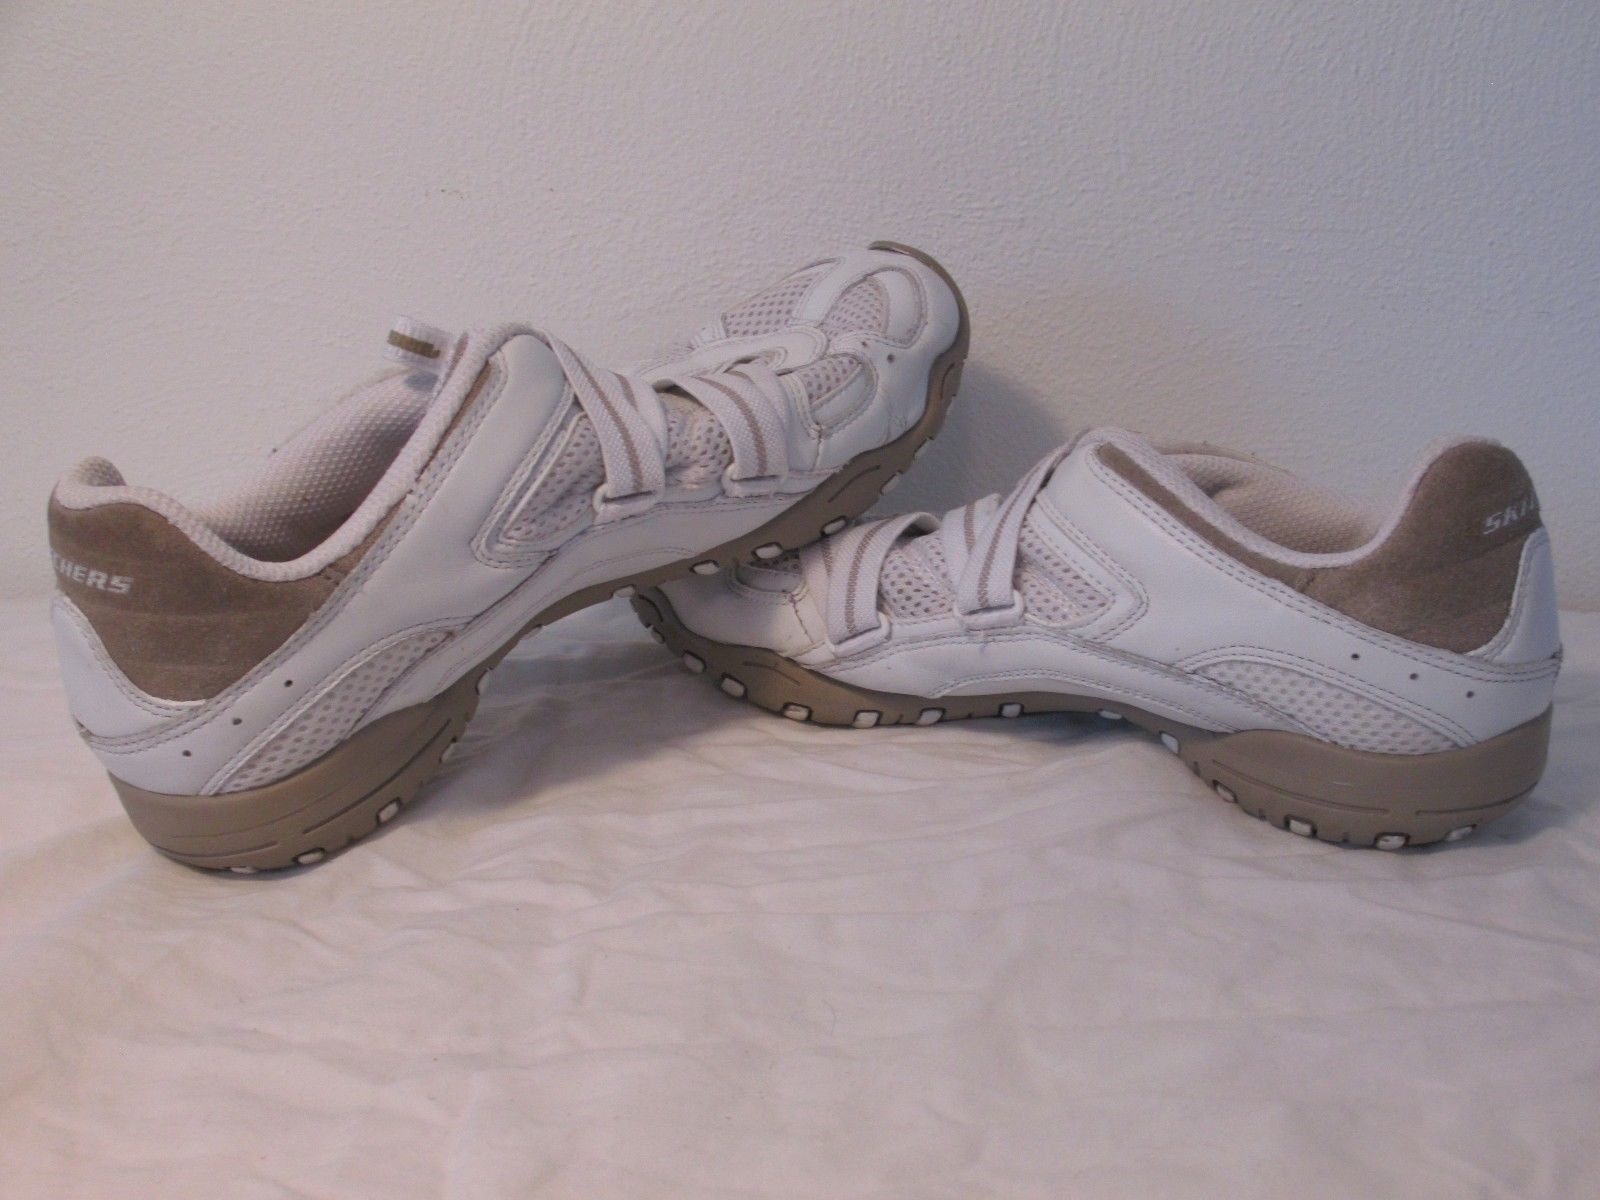 skechers white slip on hook loop leather fashion athletic